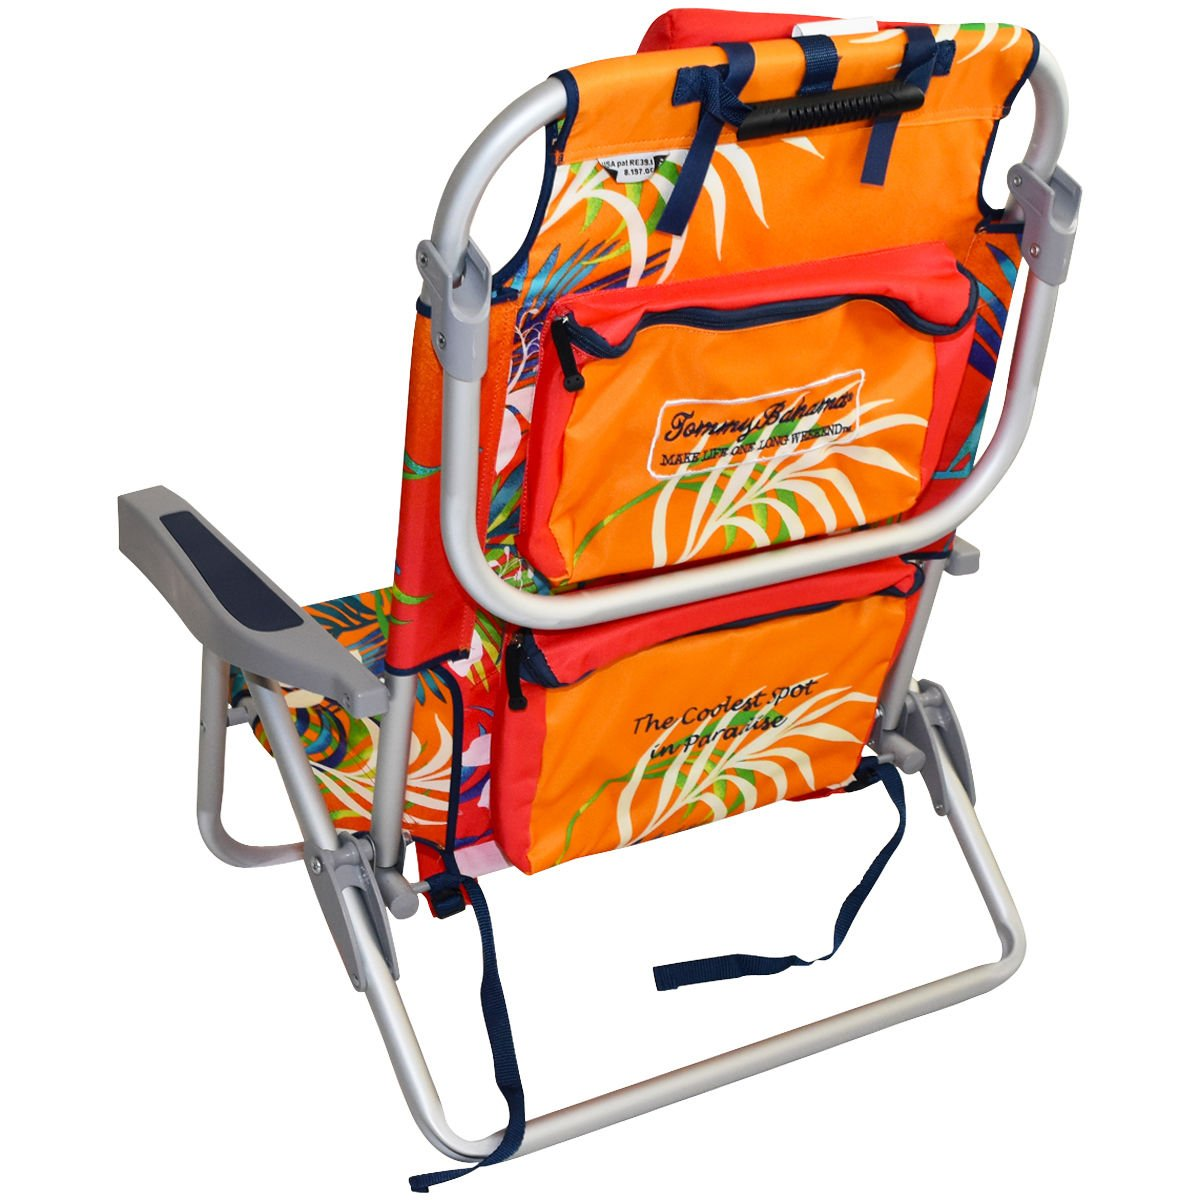 2 Tommy Bahama 2016 Backpack Cooler Chair with Storage Pouch and Towel Bar (Orange/Red & Orange/Red) by Tommy Bahama (Image #4)